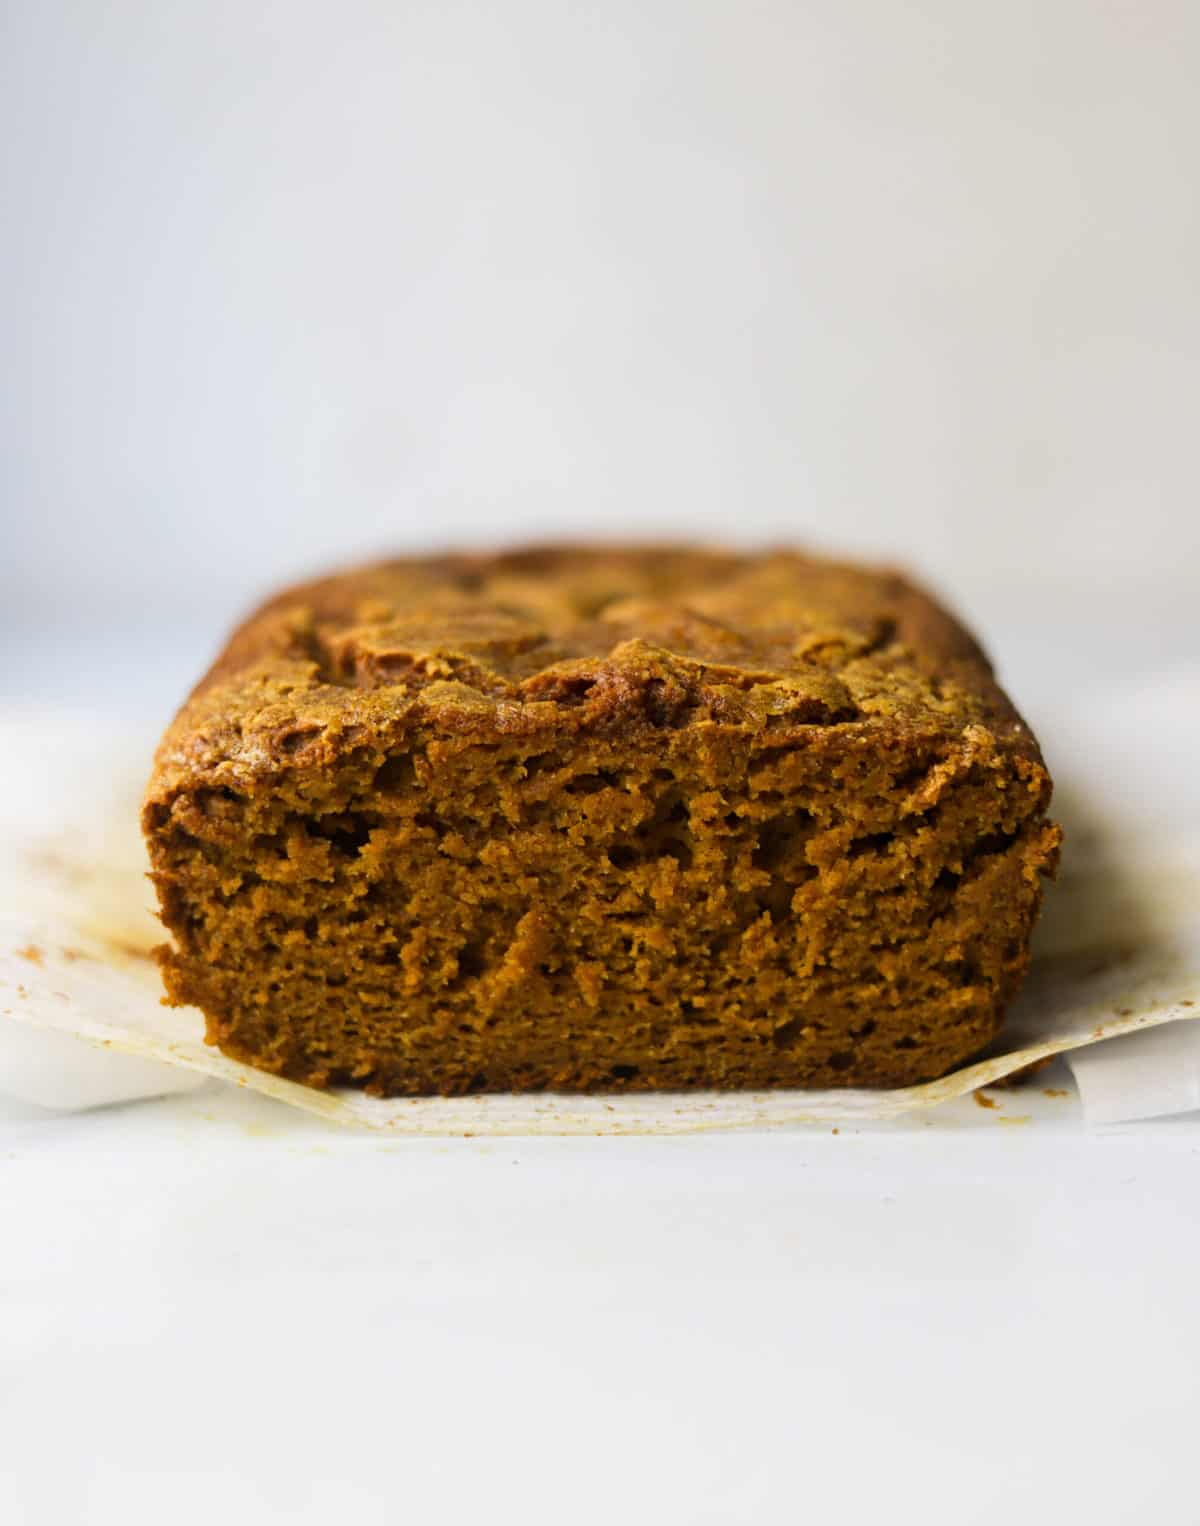 A side shot of a loaf of pumpkin bread with one slice.